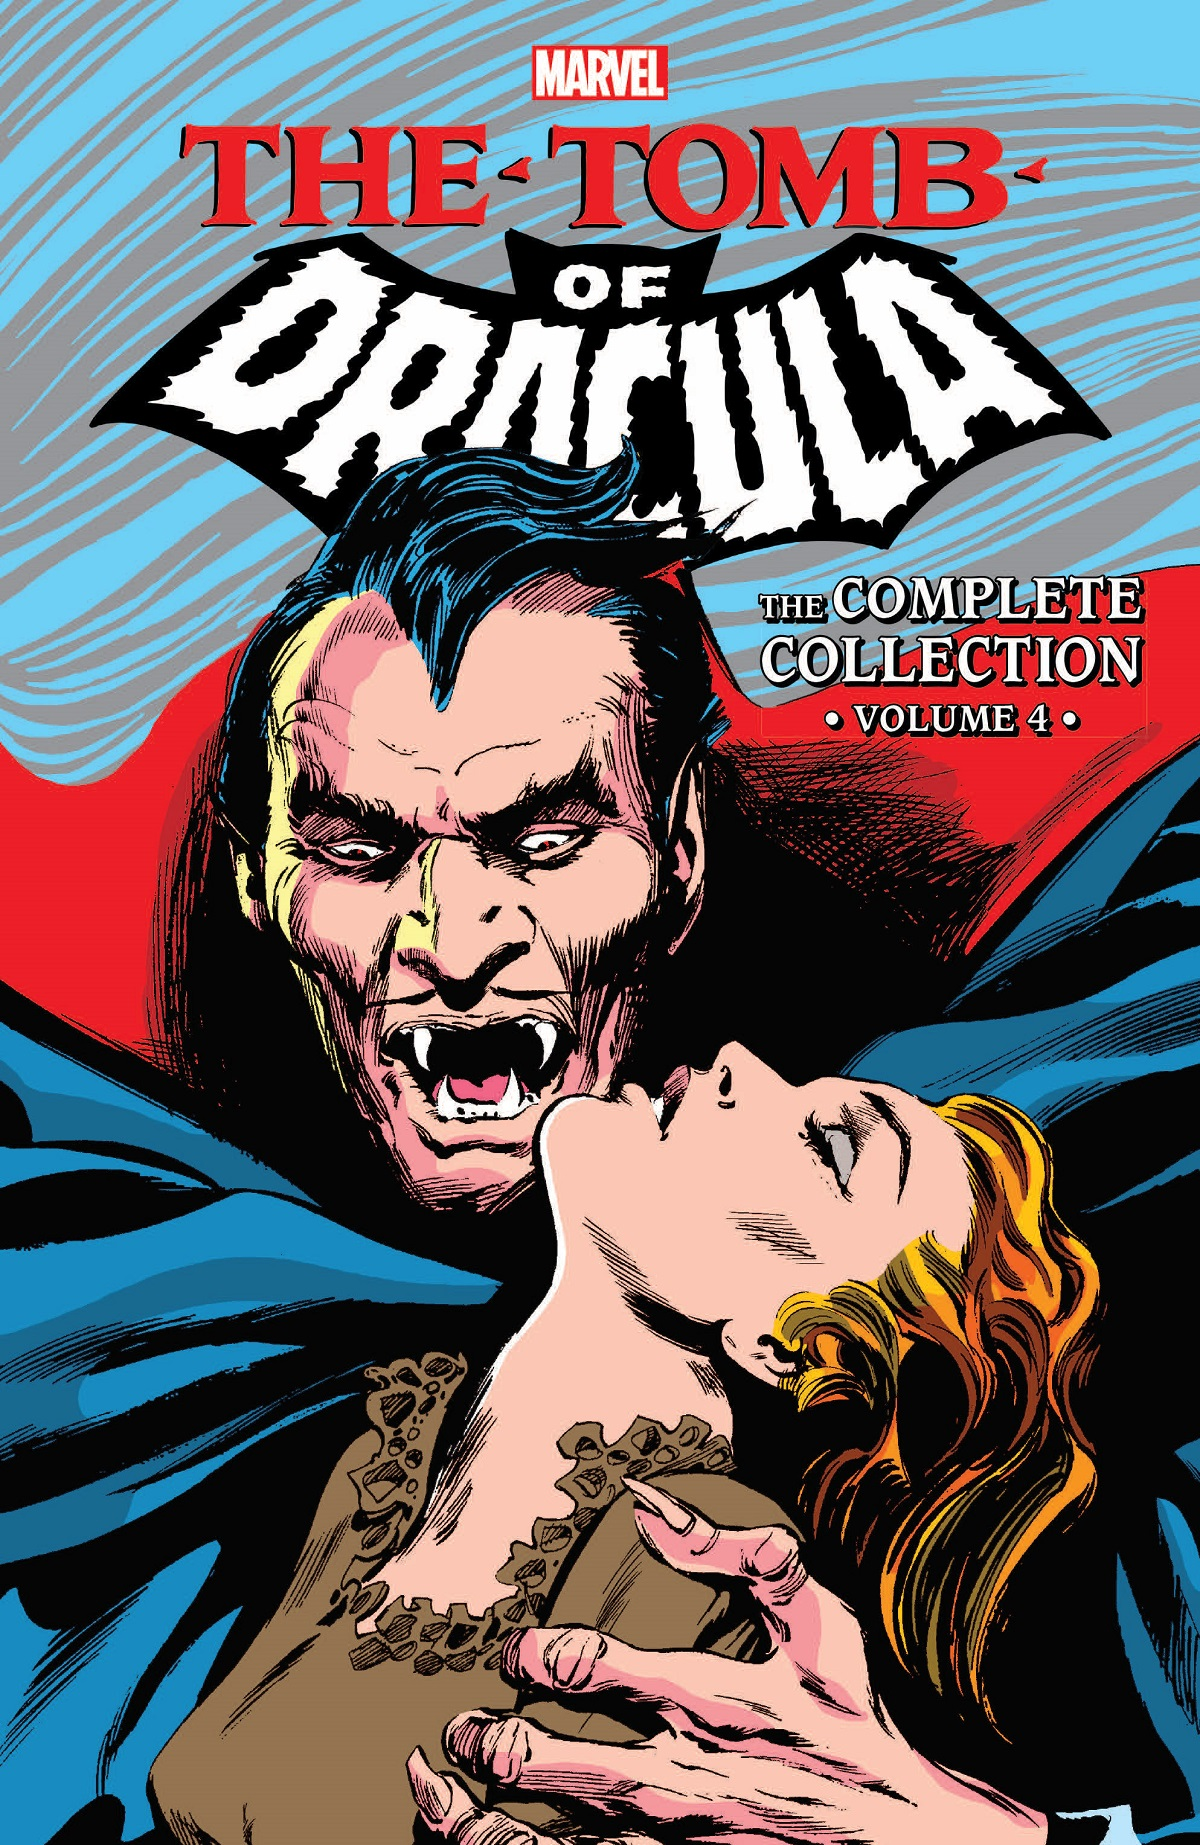 Tomb Of Dracula: The Complete Collection Vol. 4 (Trade Paperback)